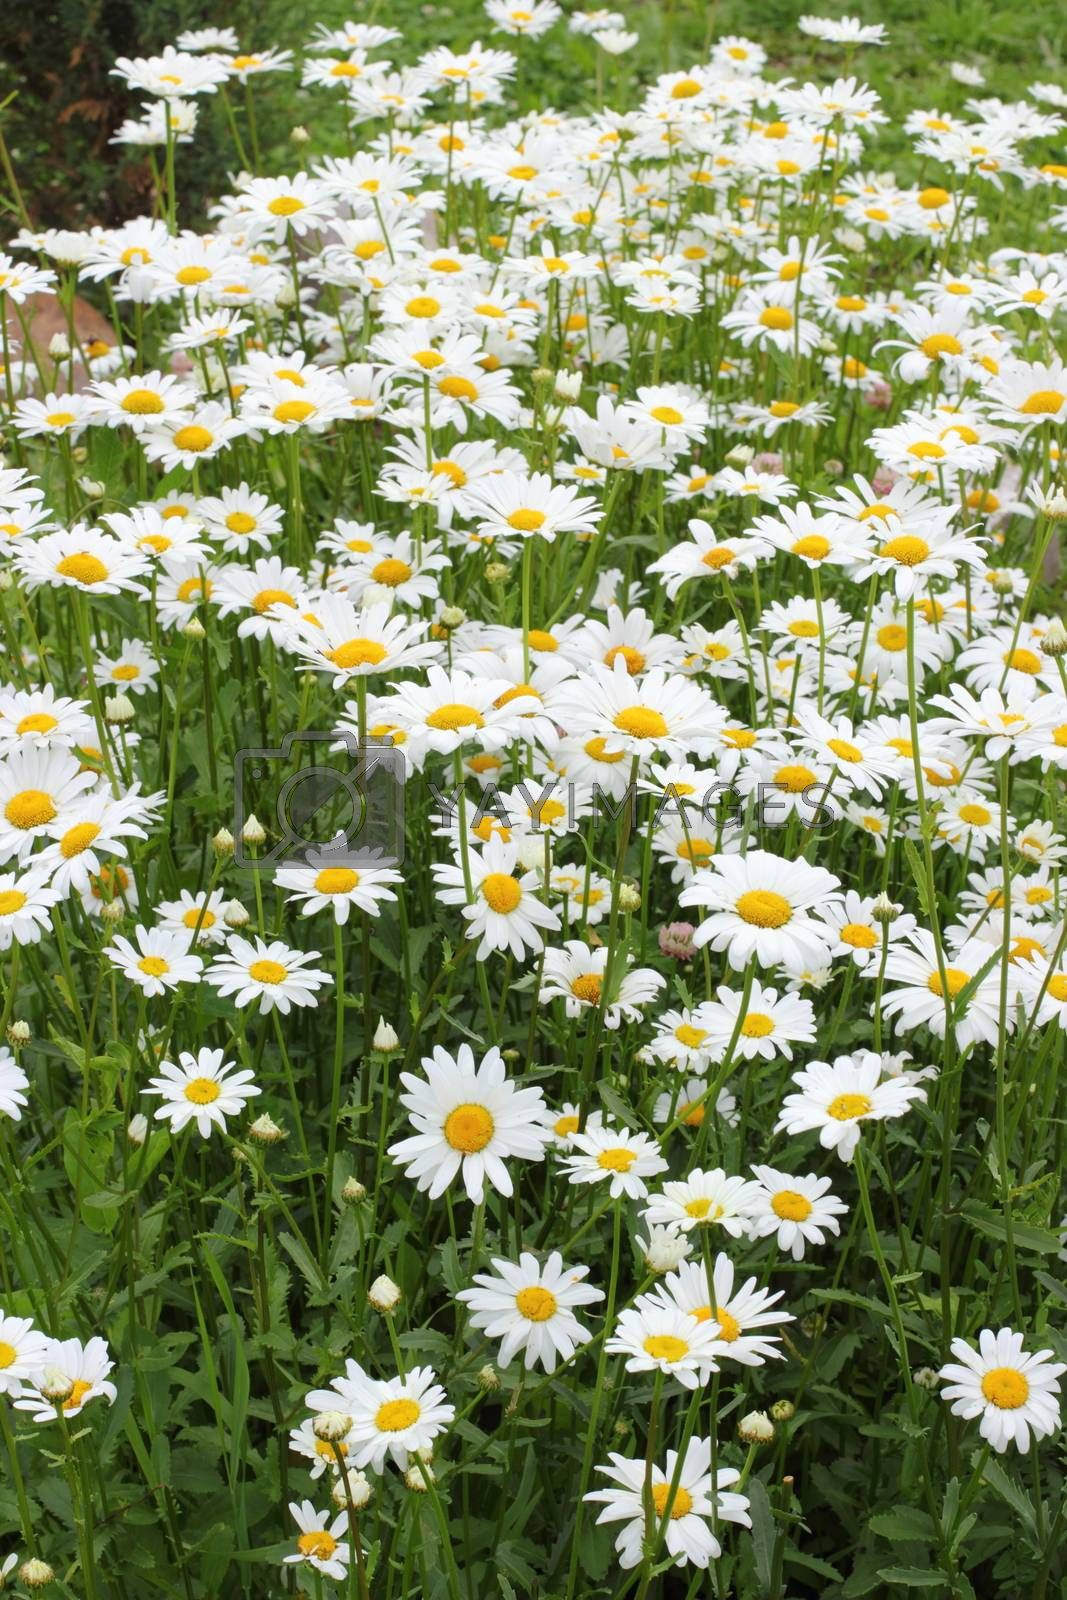 Many daisies in the garden Background of flowers